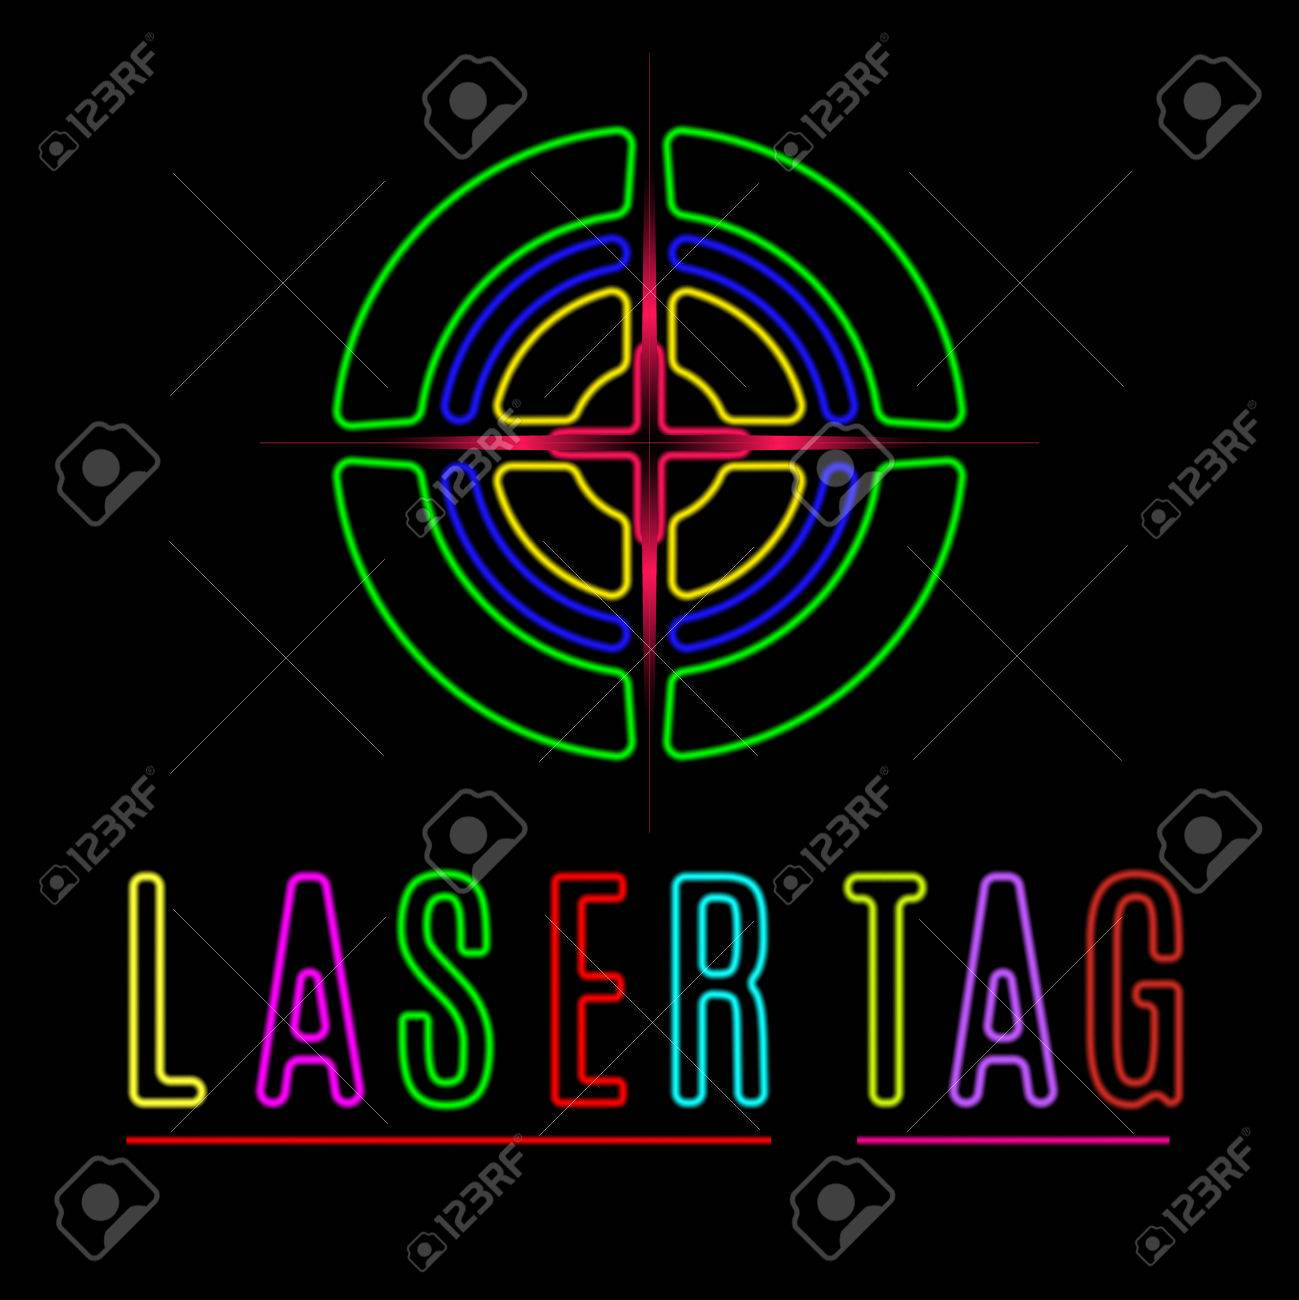 1 862 laser tag cliparts stock vector and royalty free laser tag rh 123rf com laser tag gun clipart laser tag target clipart